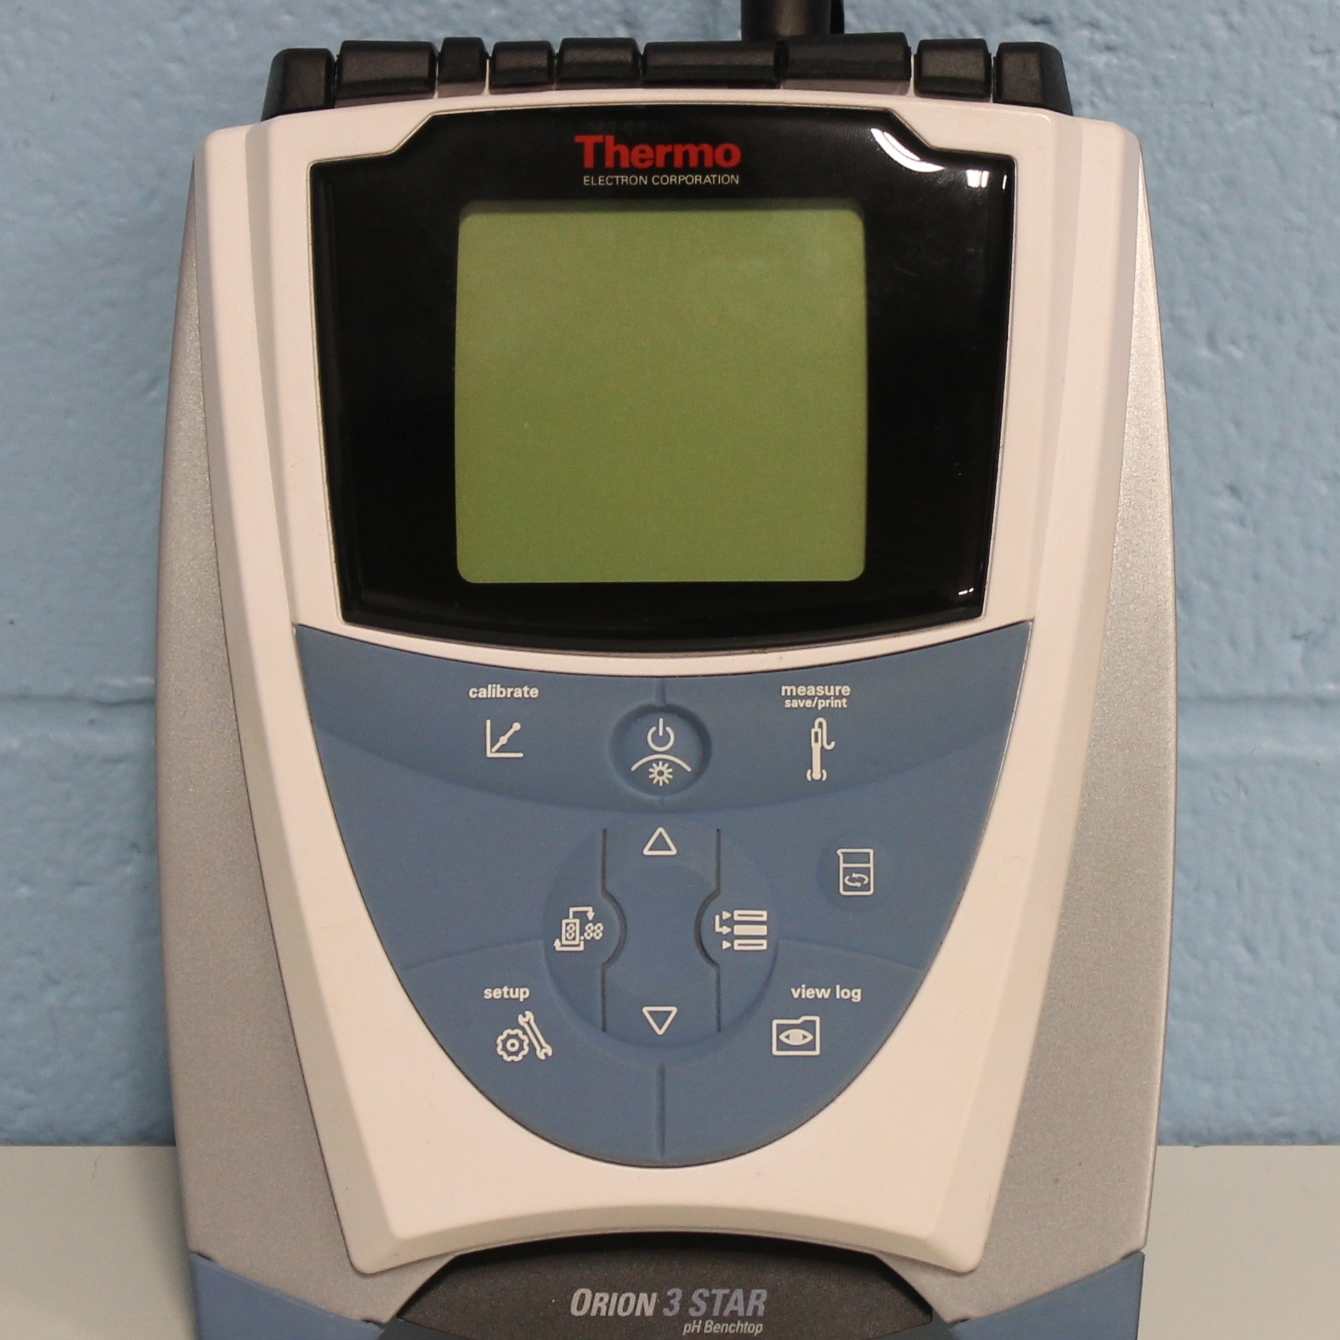 Thermo Orion 3-Star pH/Conductivity/DO Benchtop Meter Image